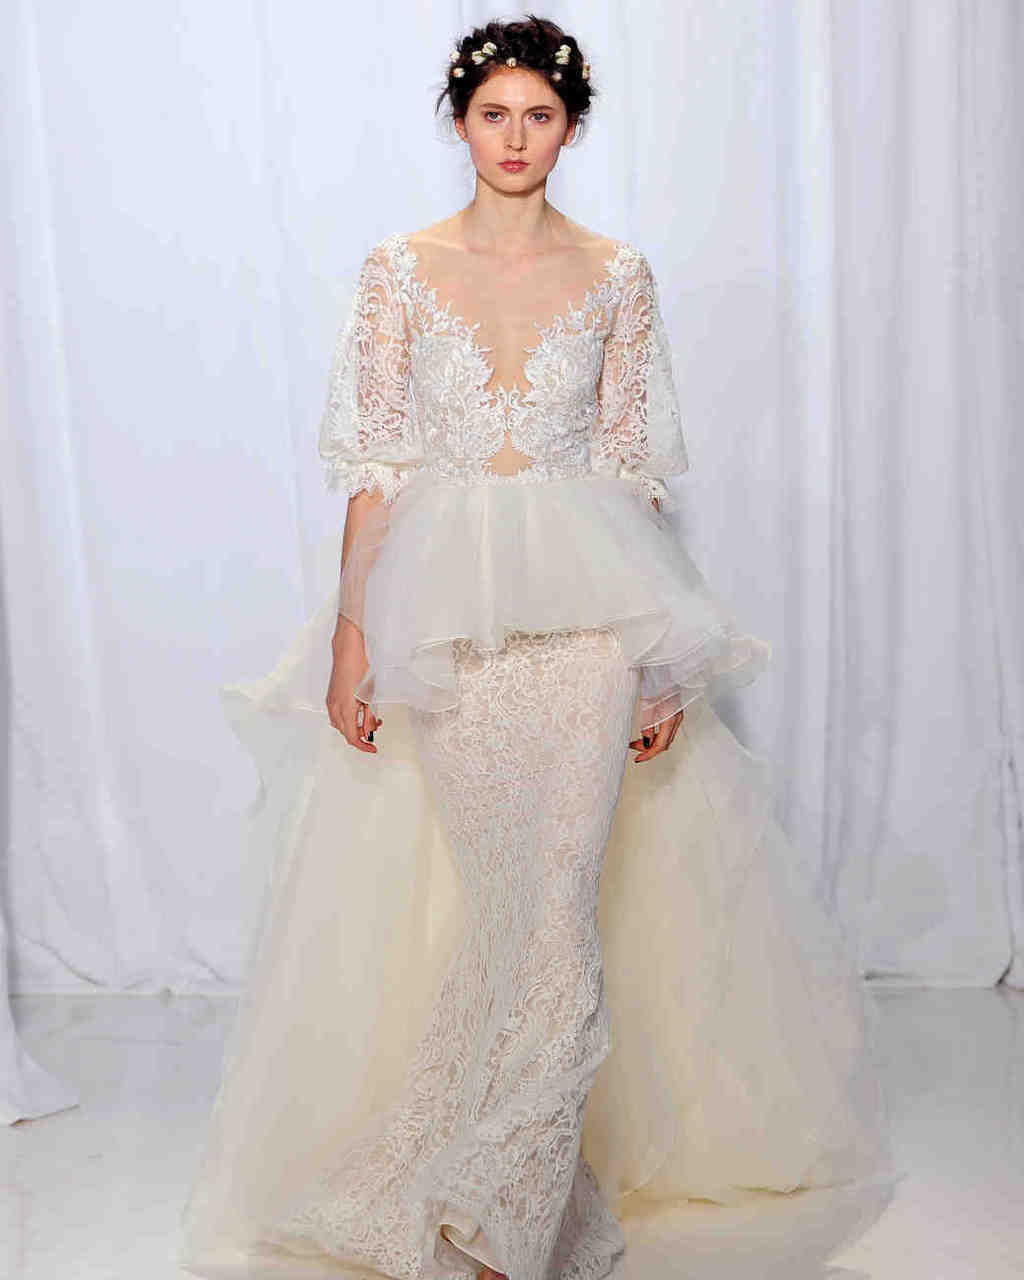 reem-acra-wedding-dress-fall2017-6203351-020_vert